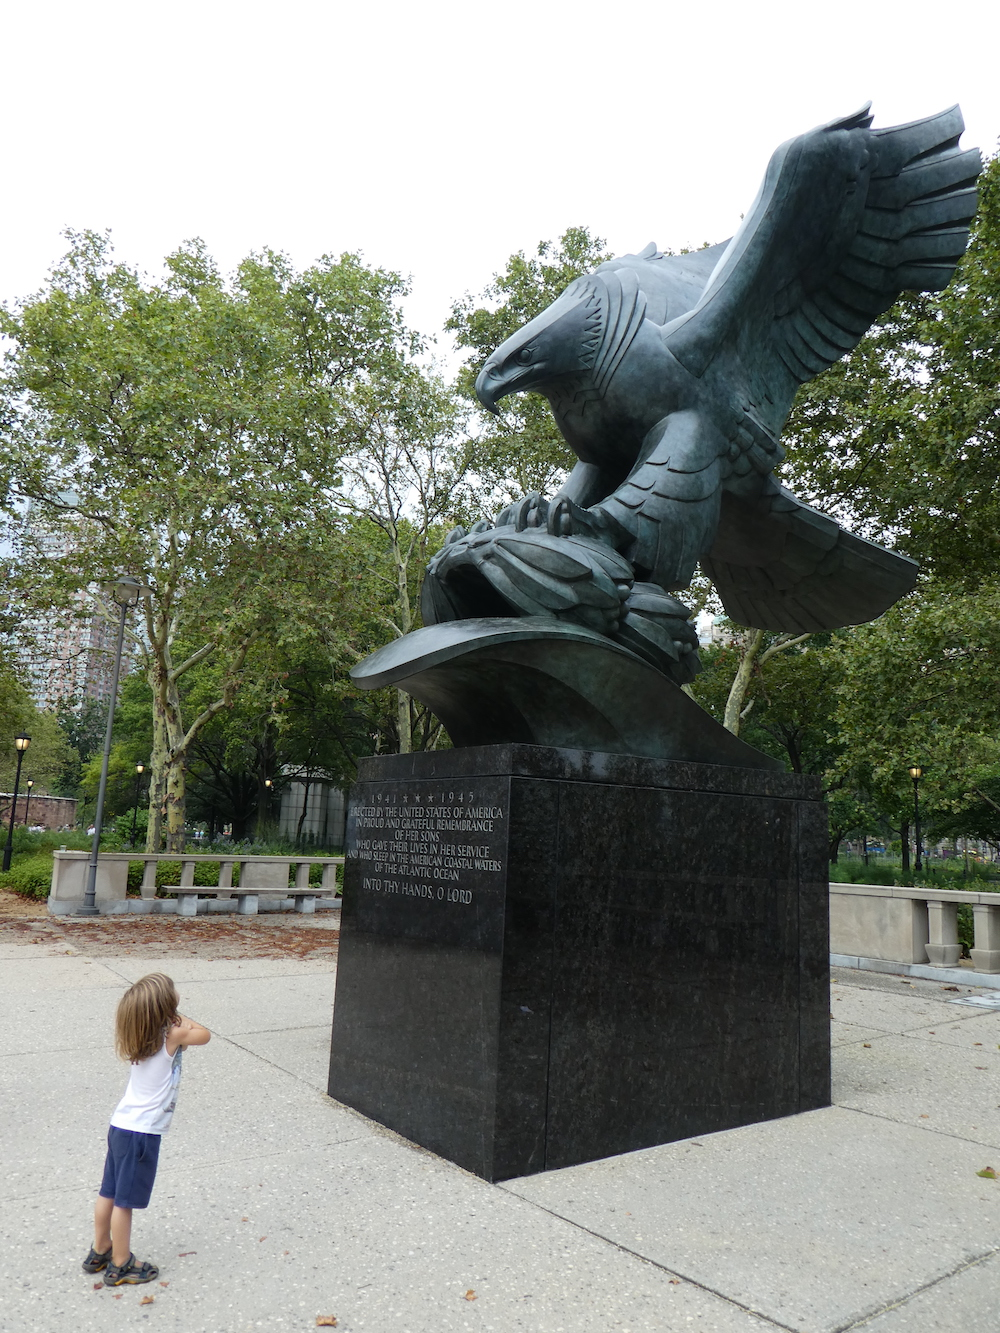 Doen in New York met kinderen - Battery Park